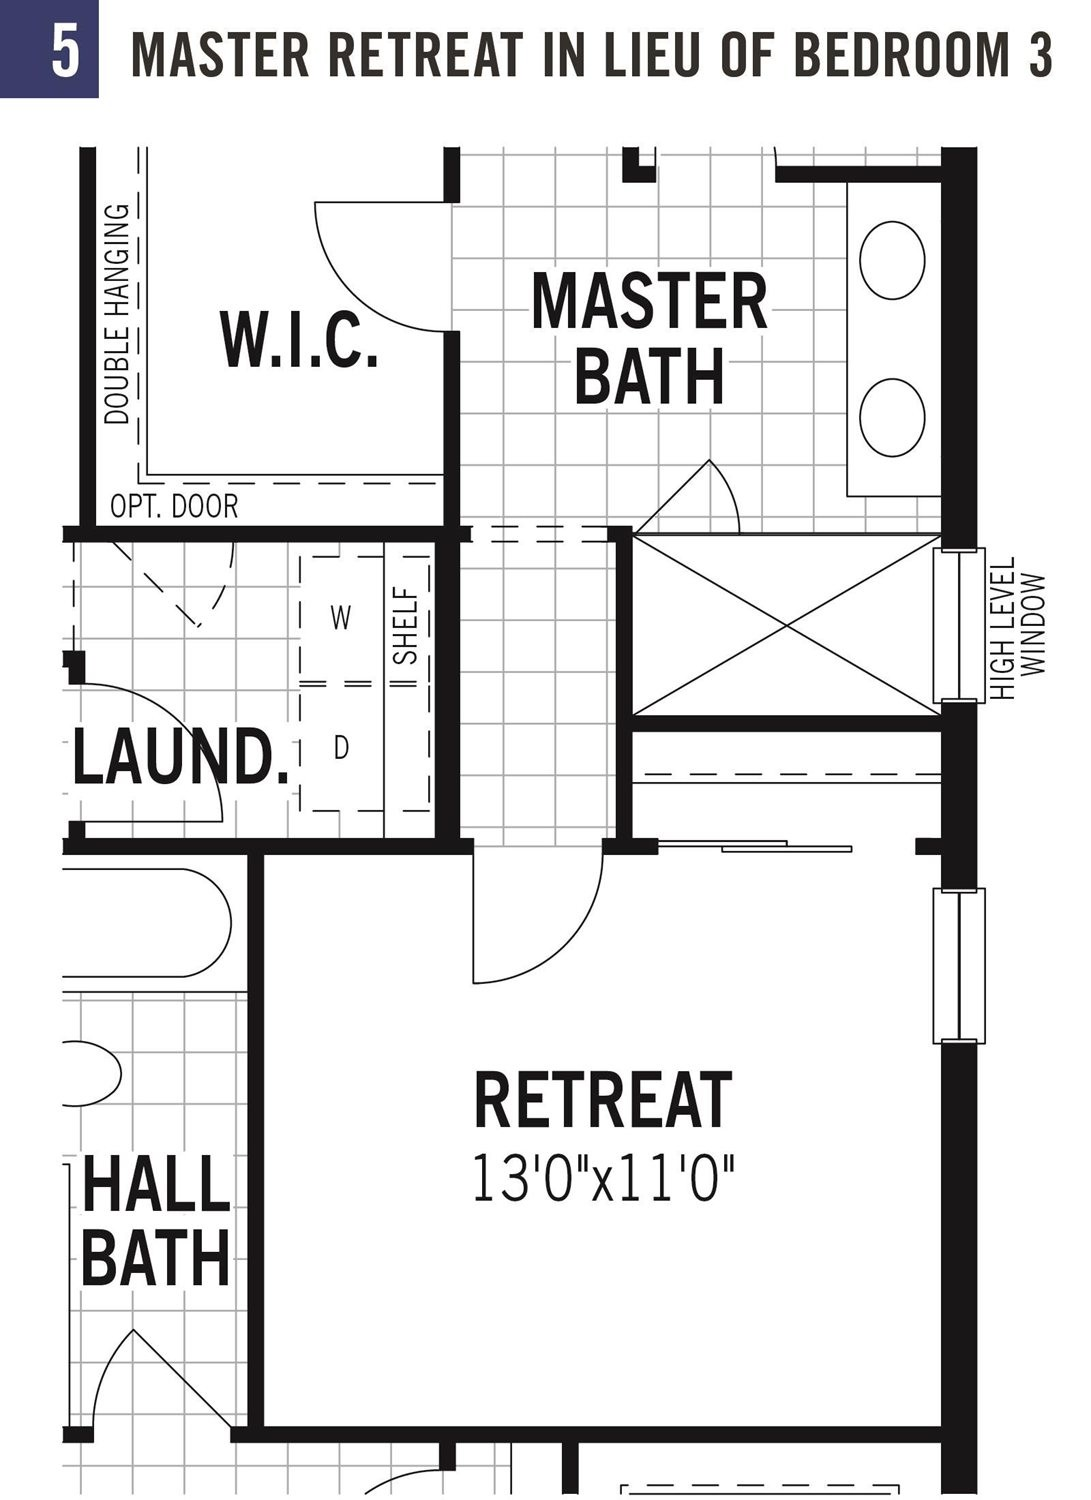 Master retreat in lieu of bedroom 3